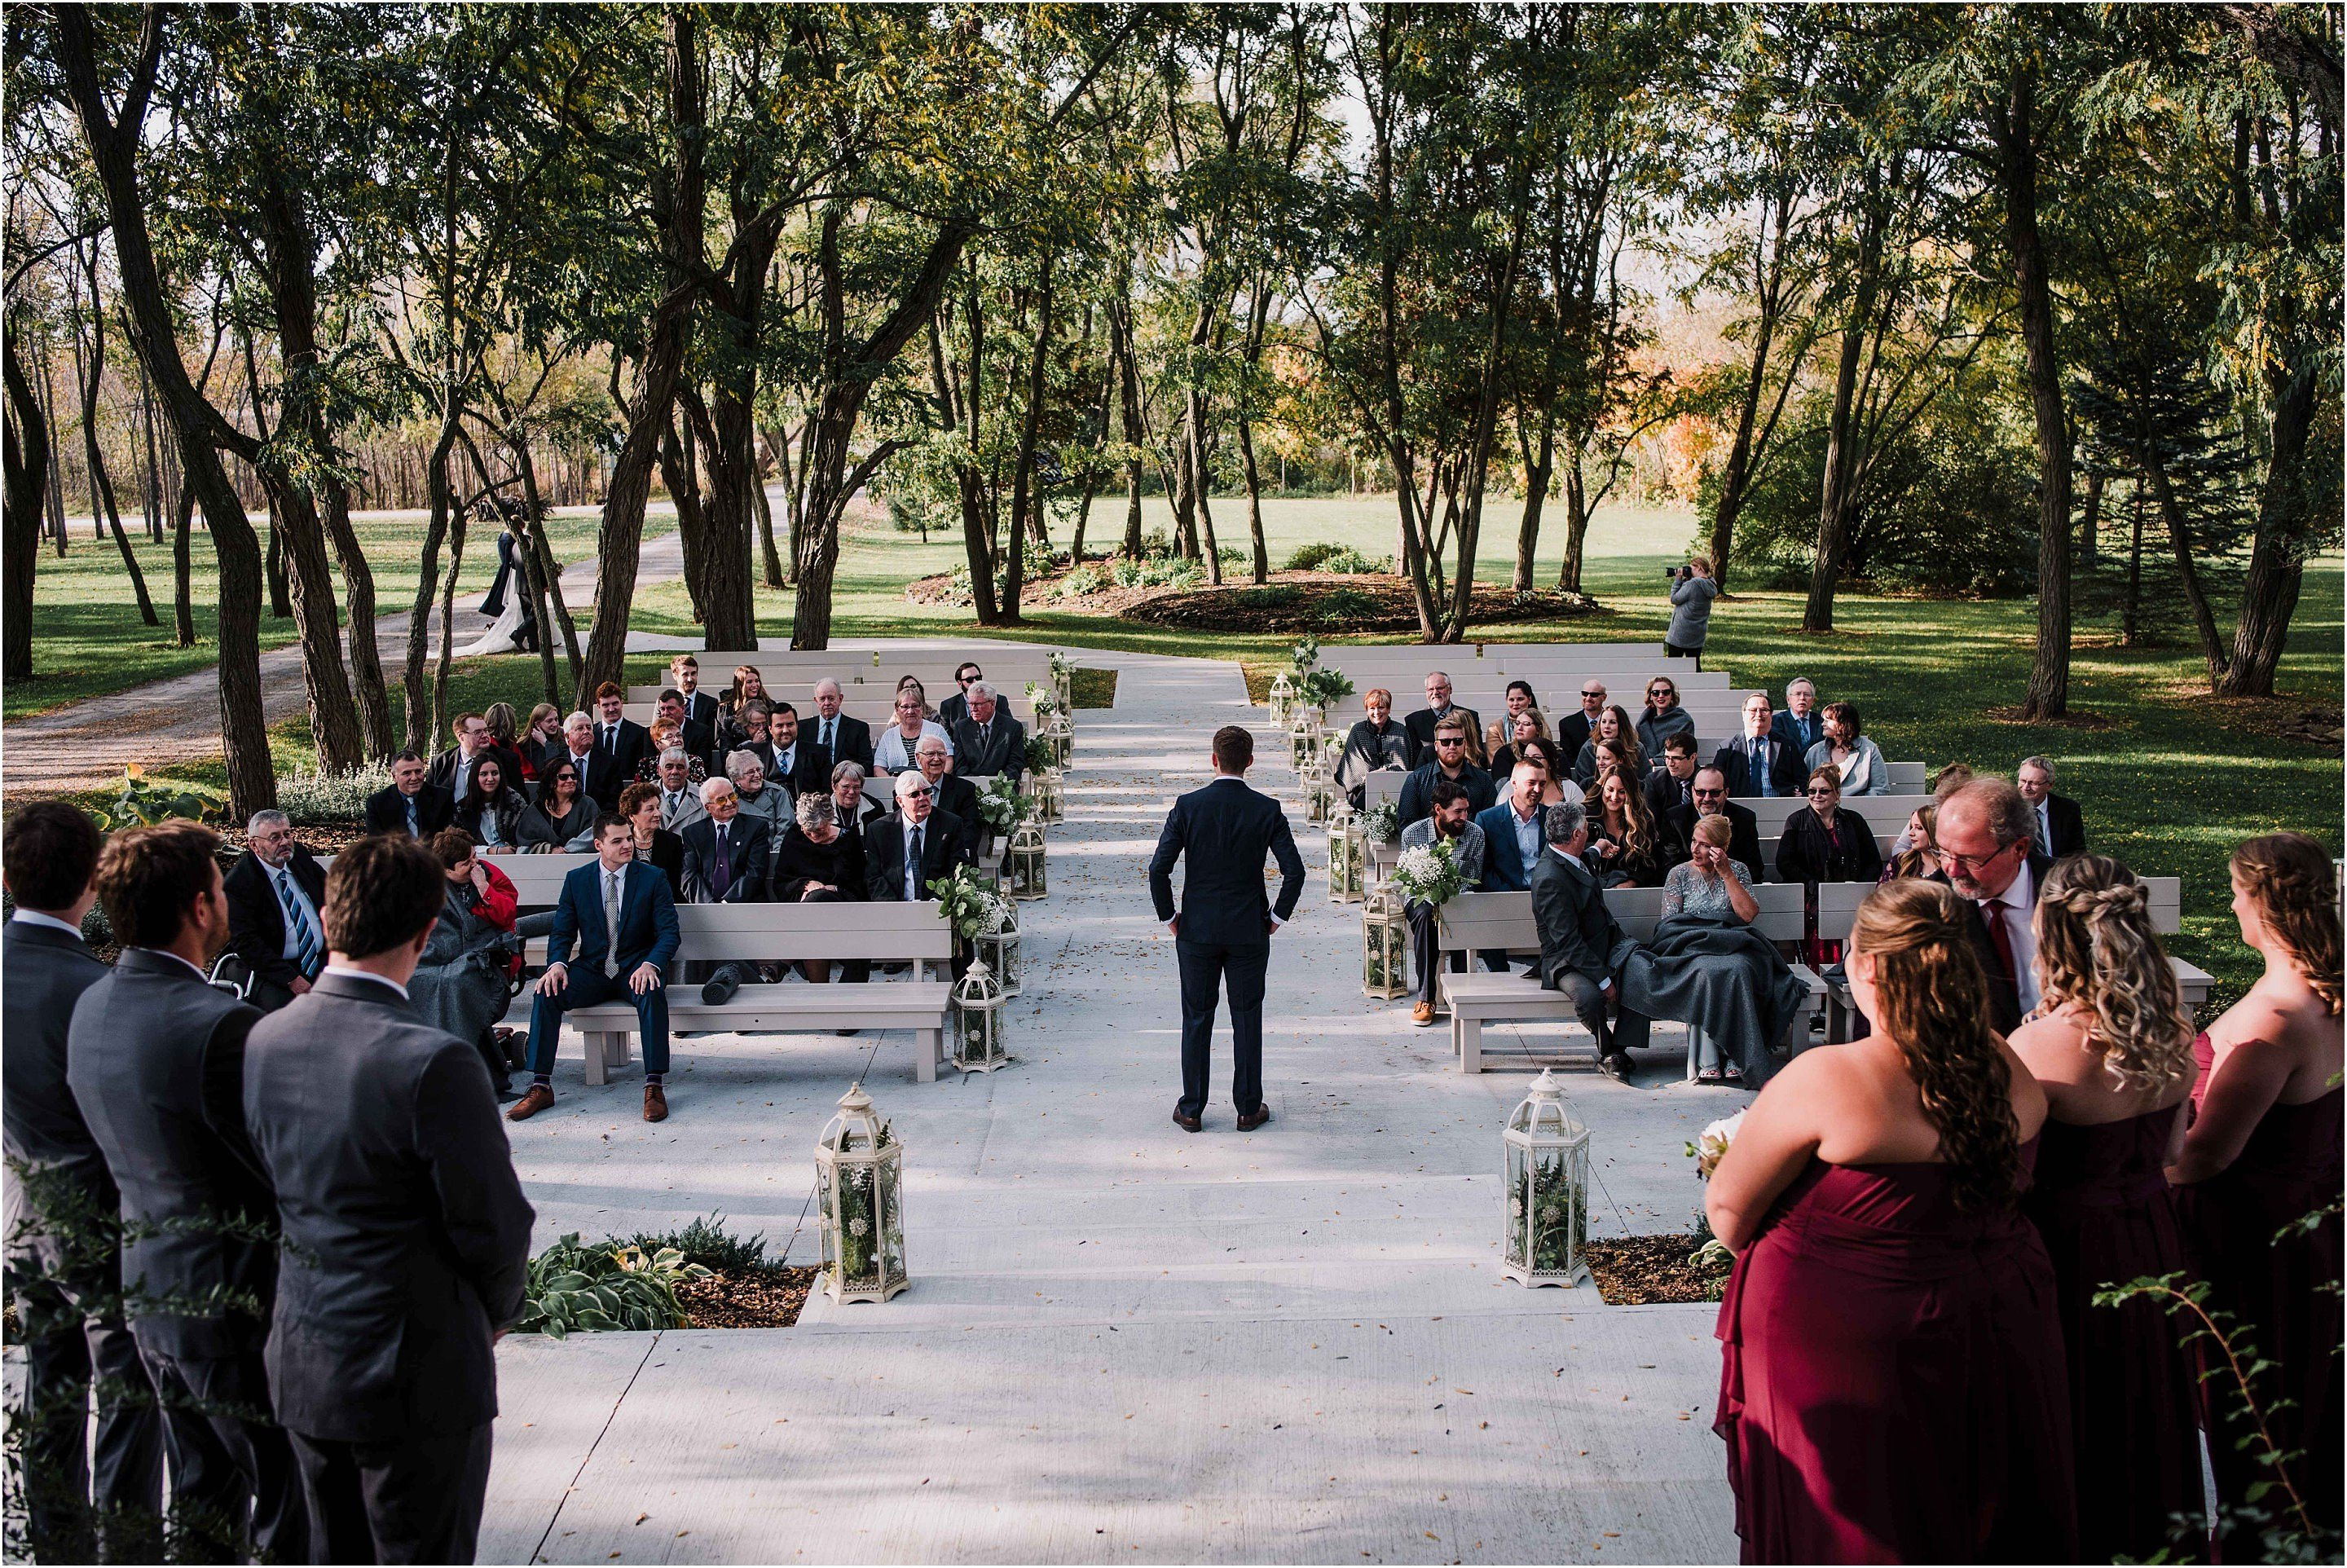 The groom waiting for his bride at the outdoor alter at Stonefields. Photo by Cindy Lottes Photography